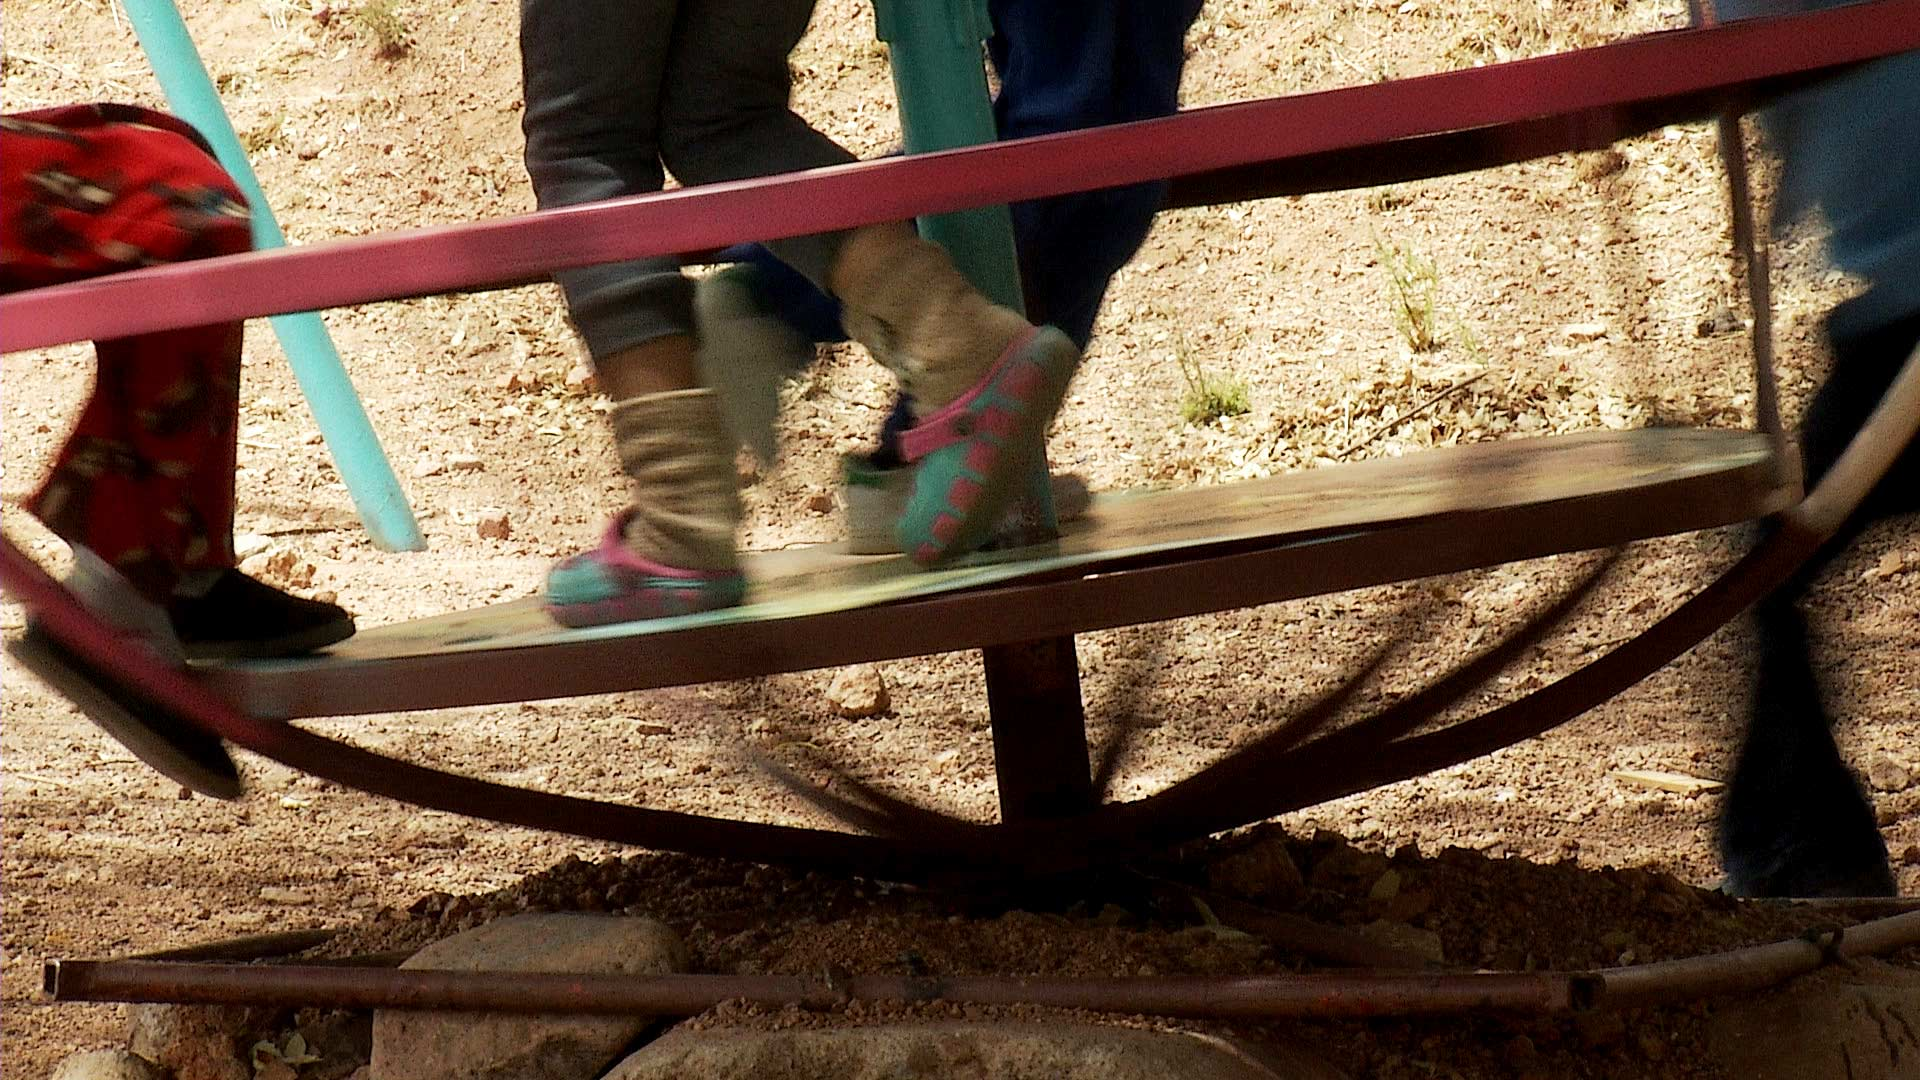 Children play at a shelter for migrant families and women in Nogales, Sonora. April 2021.